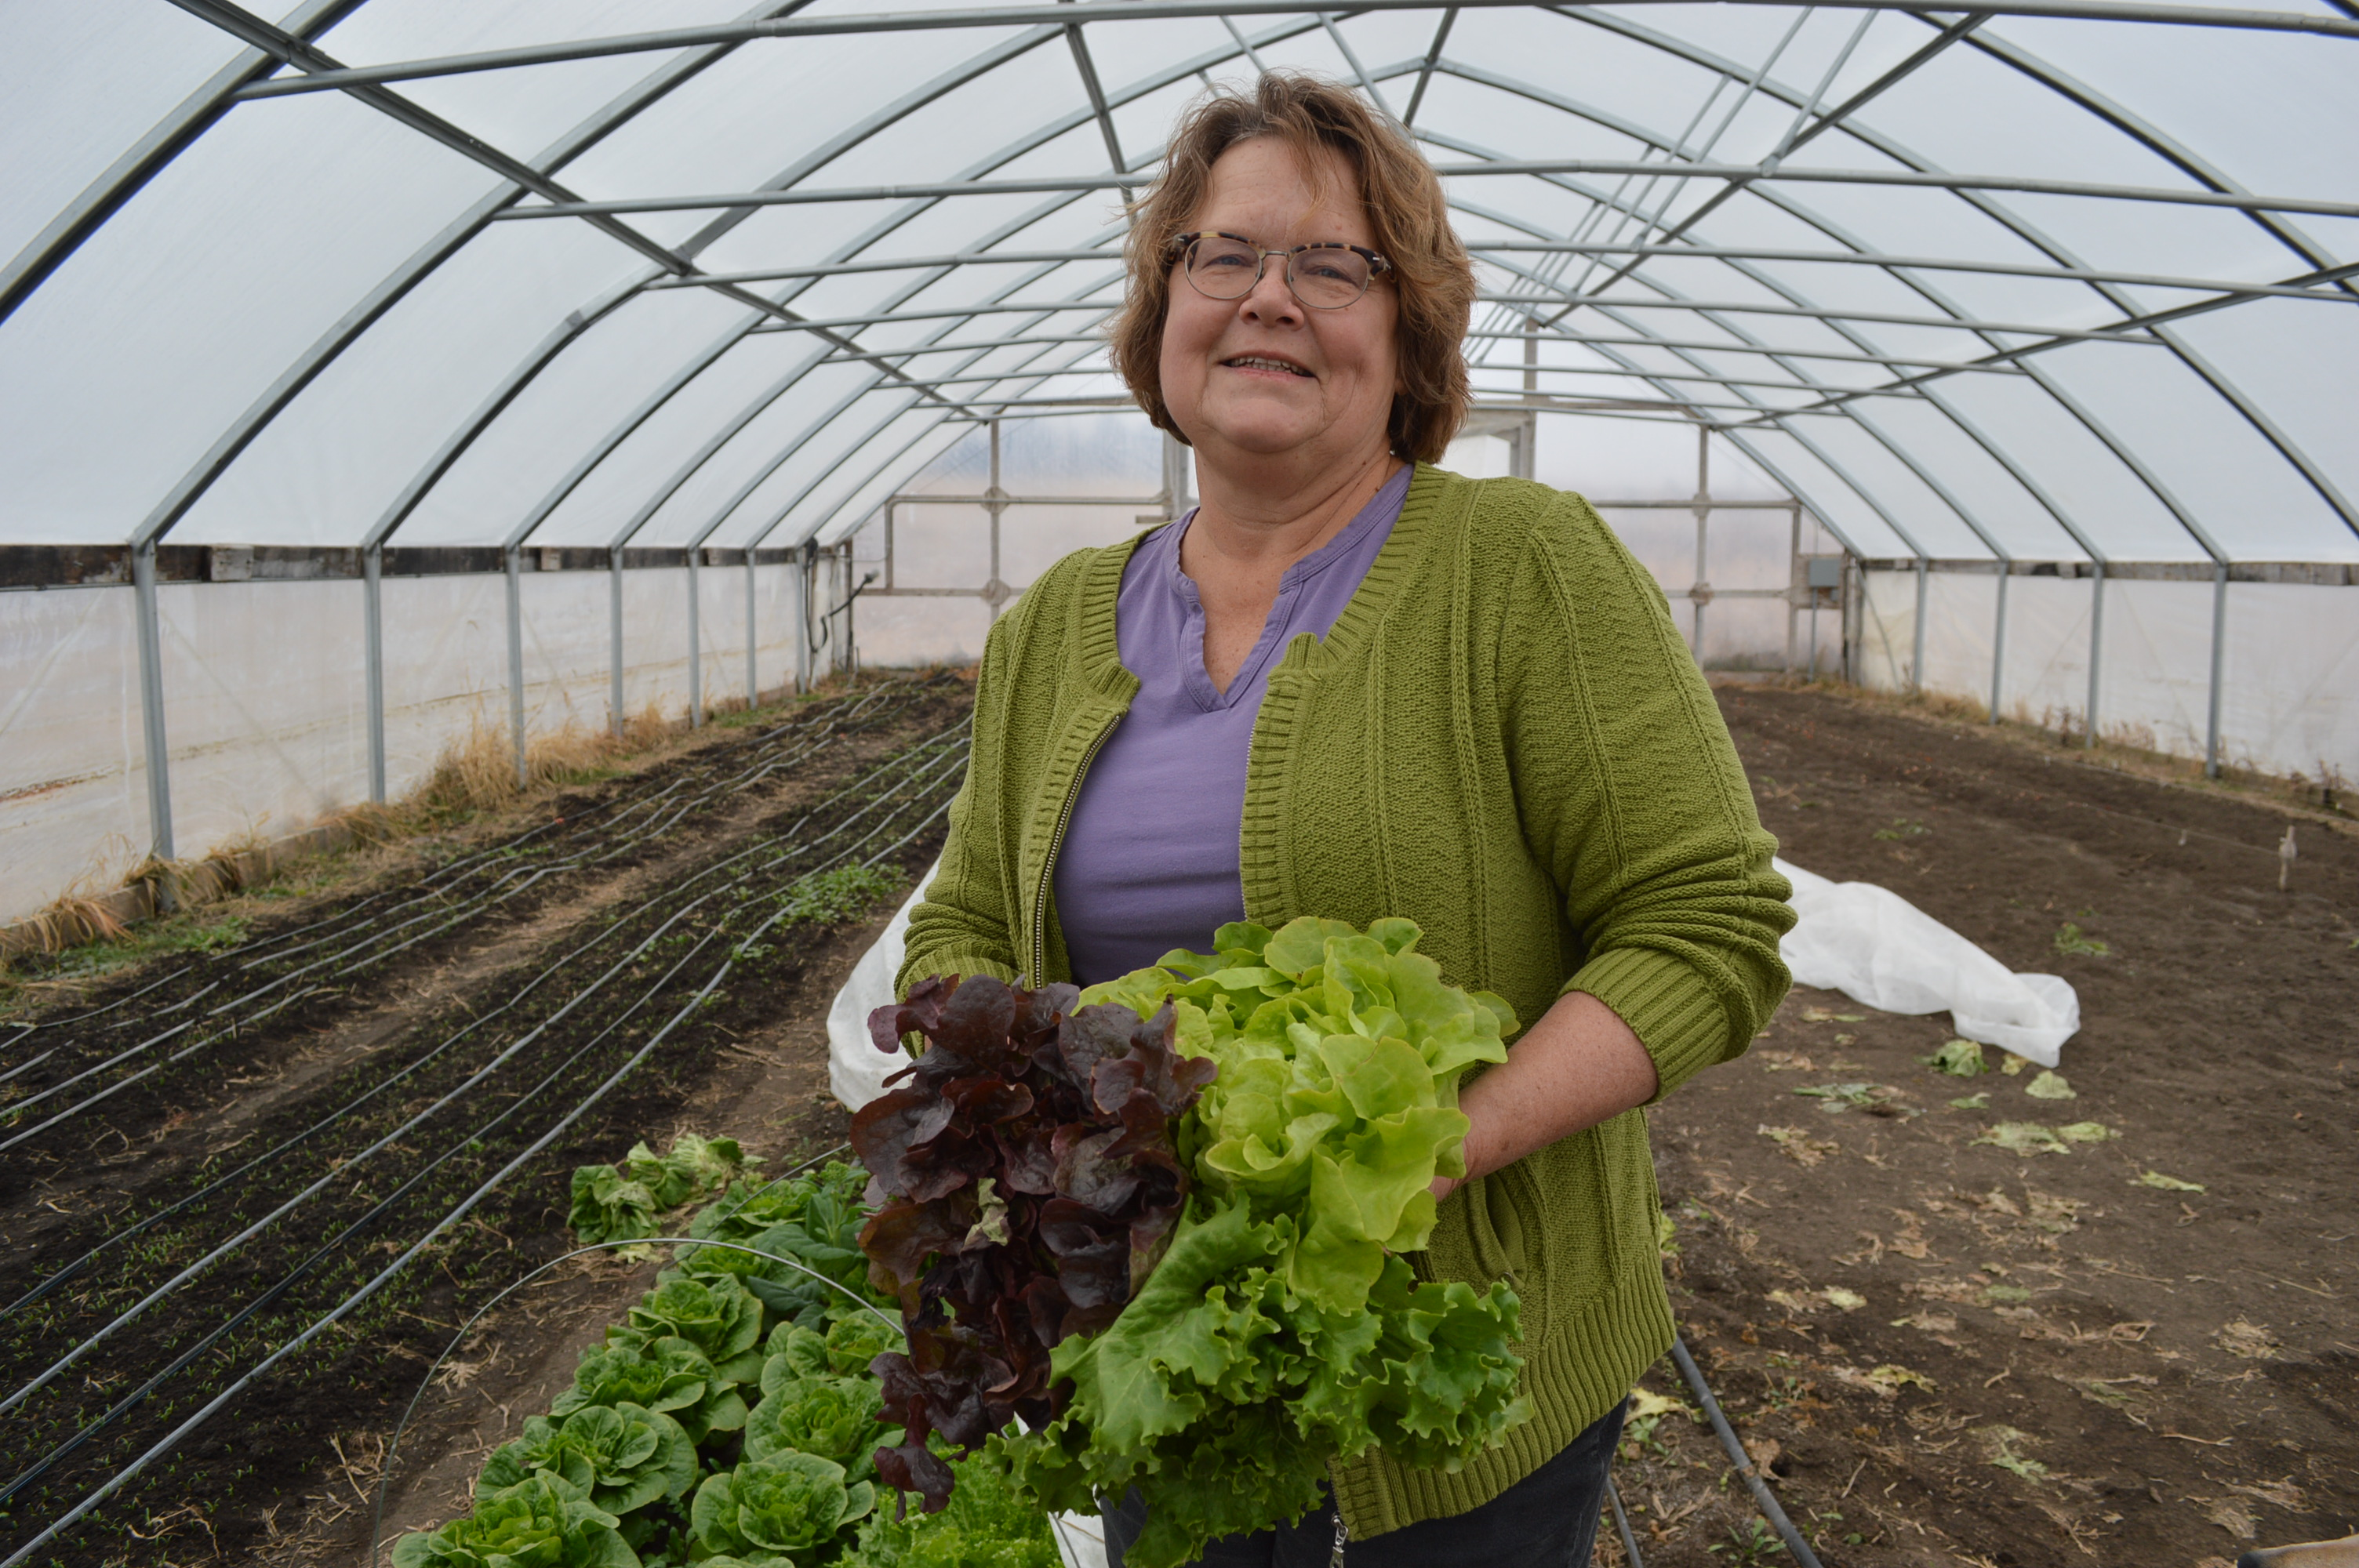 Iowa farmer Laura Krouse shares lifes lessons about our